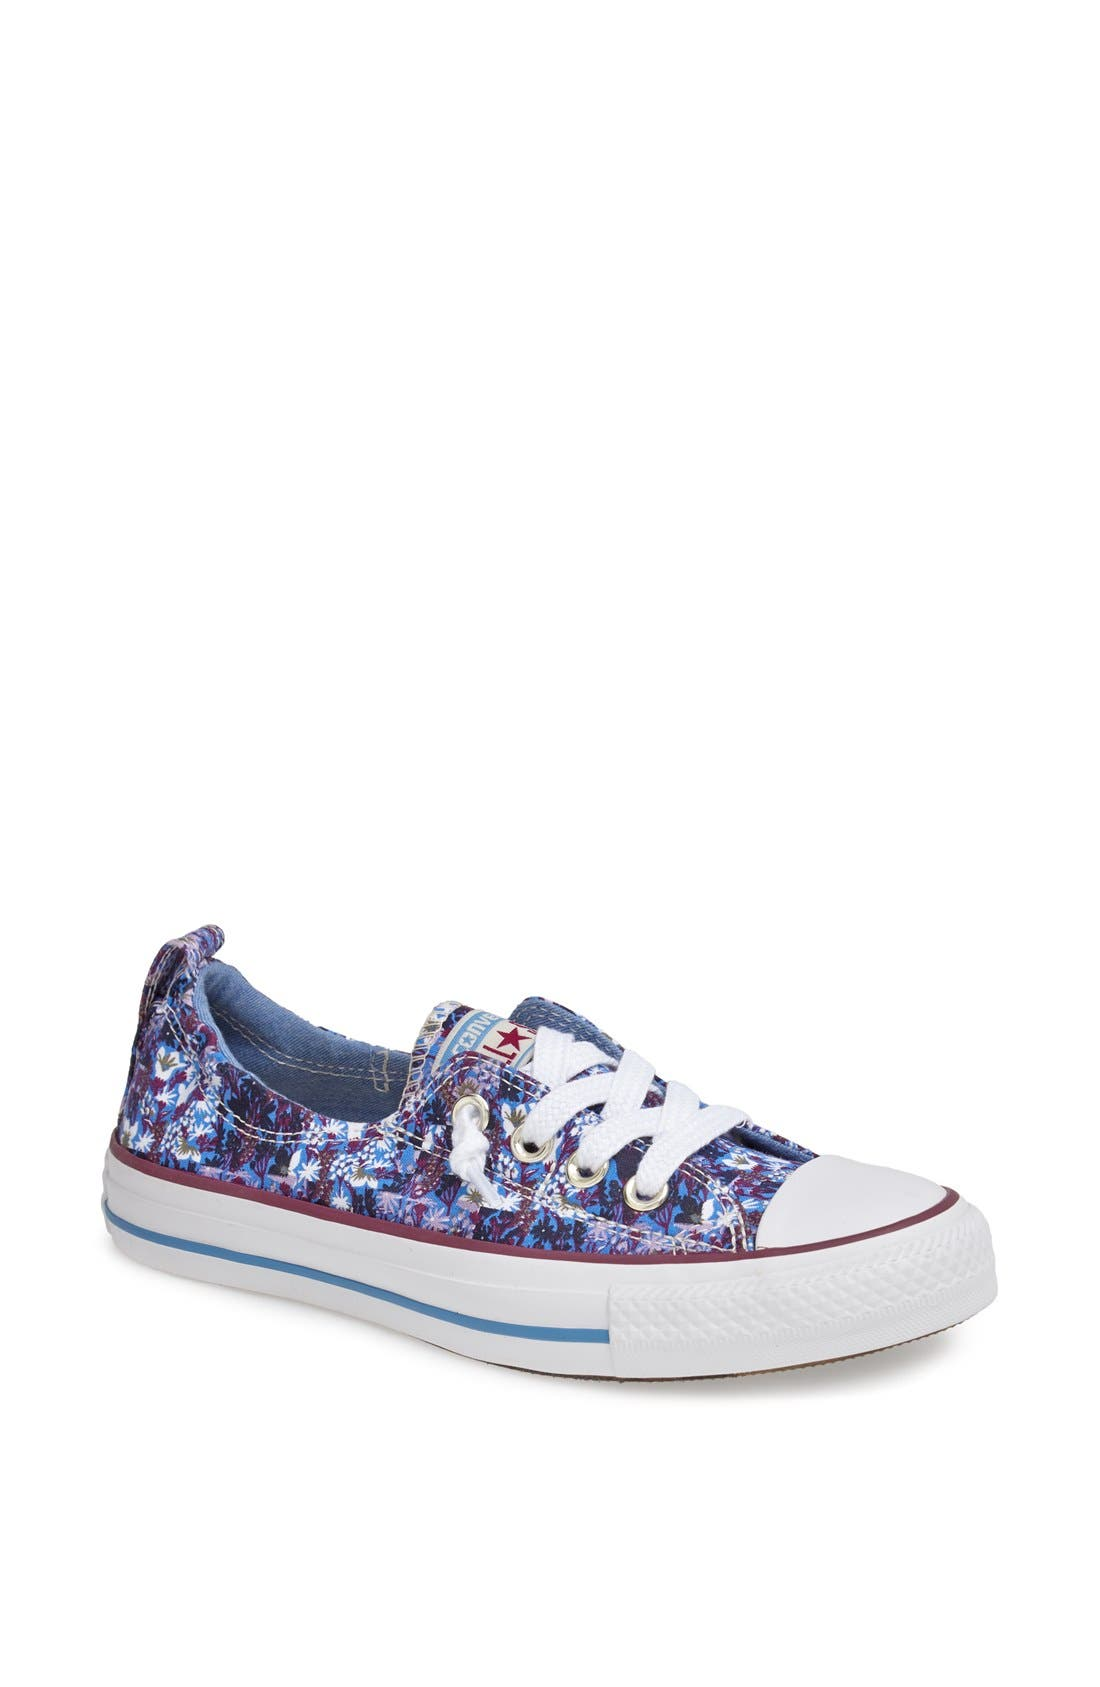 Alternate Image 1 Selected - Converse Chuck Taylor® 'Shoreline' Flower Print Sneaker (Women)